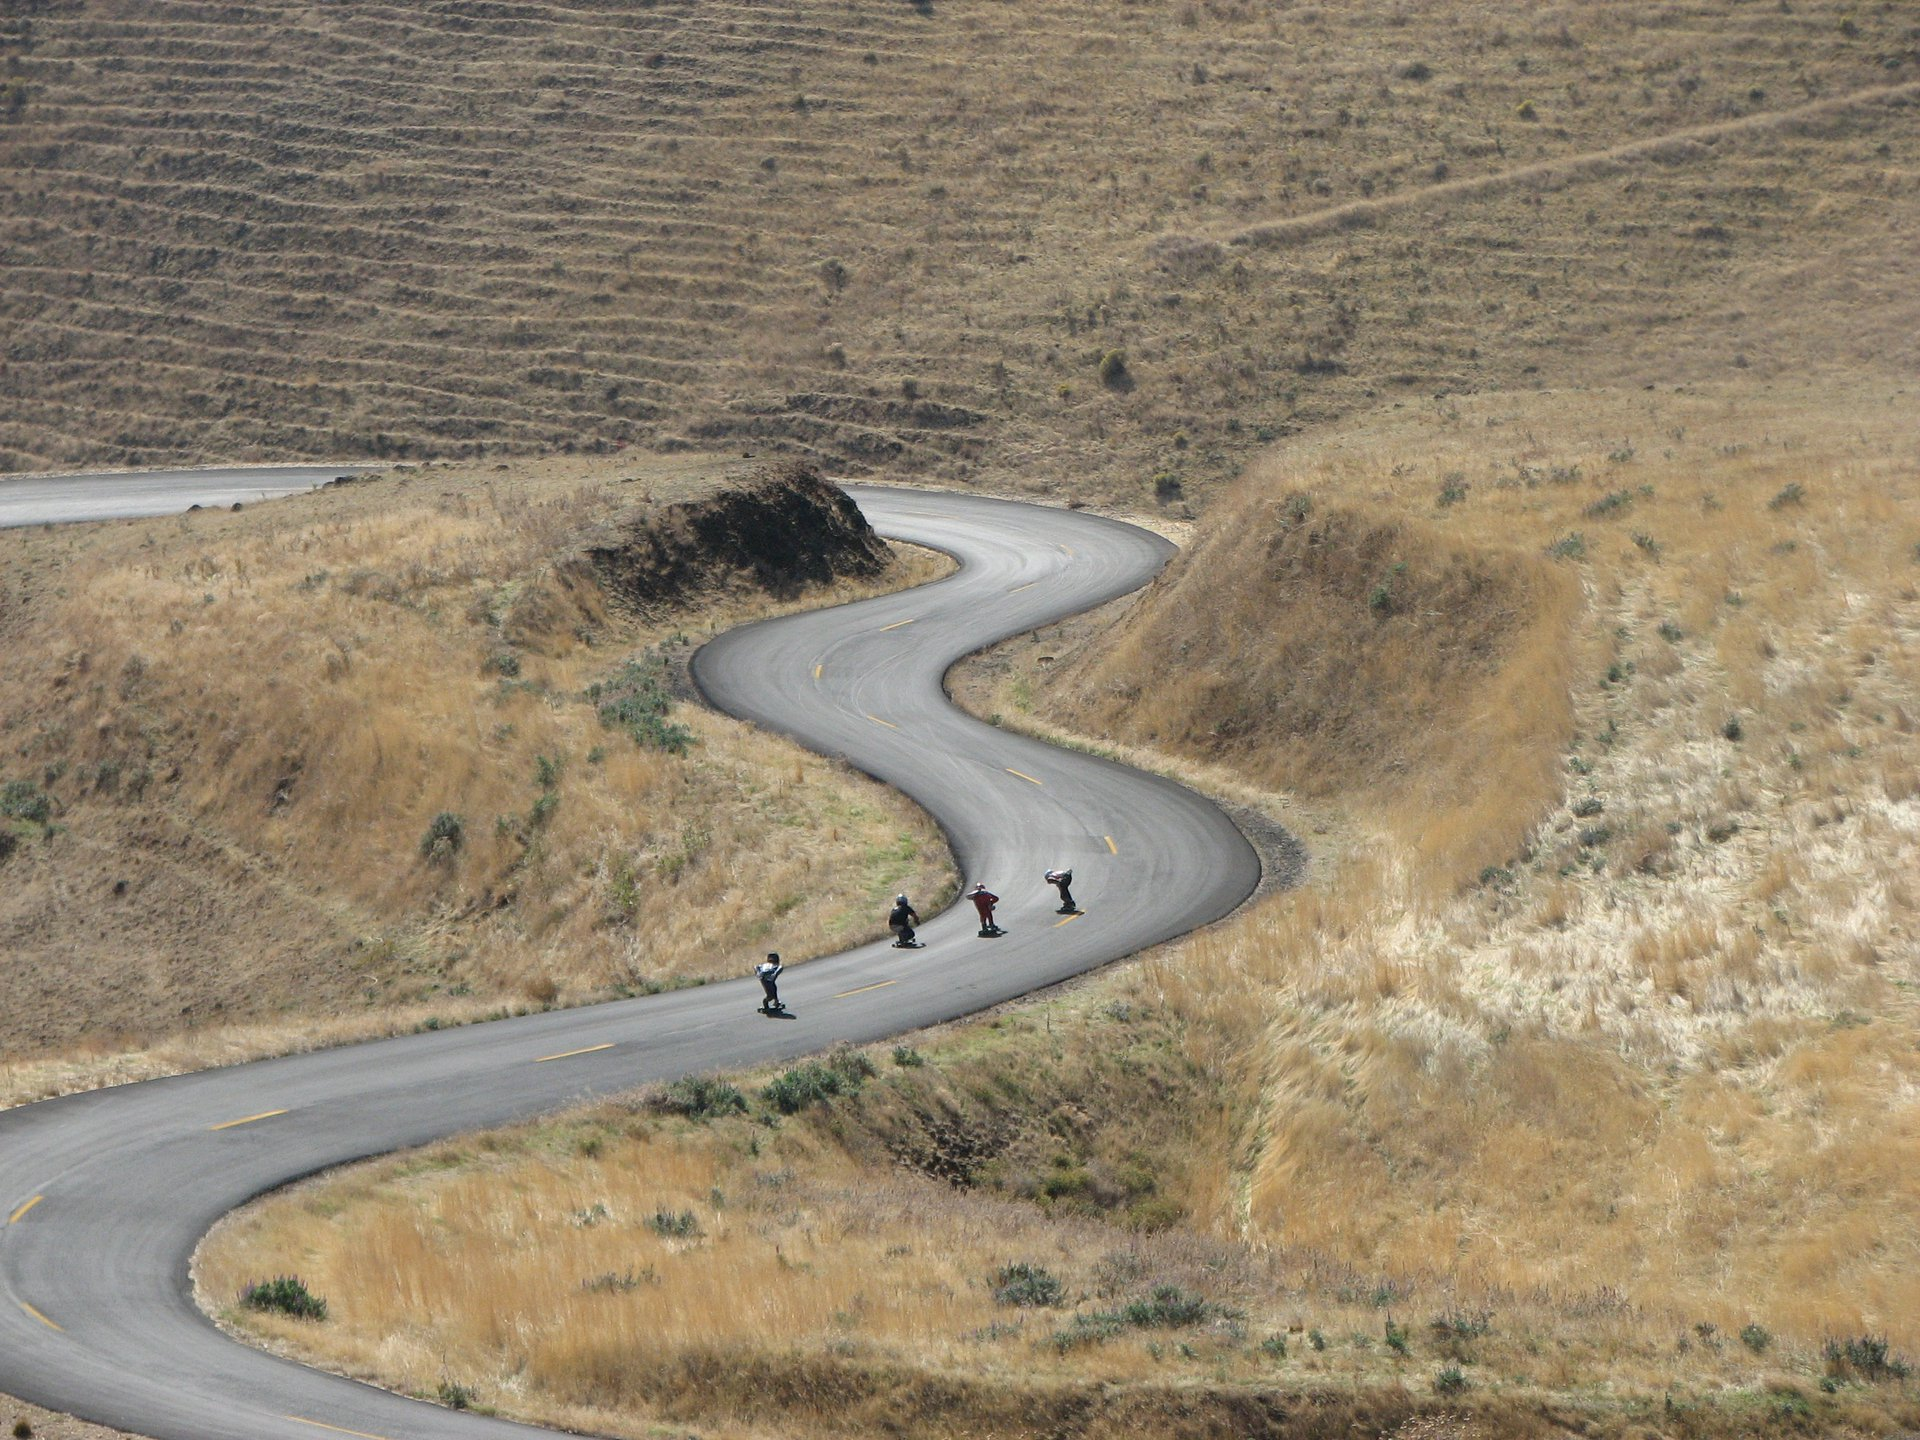 Maryhill Speedboarding